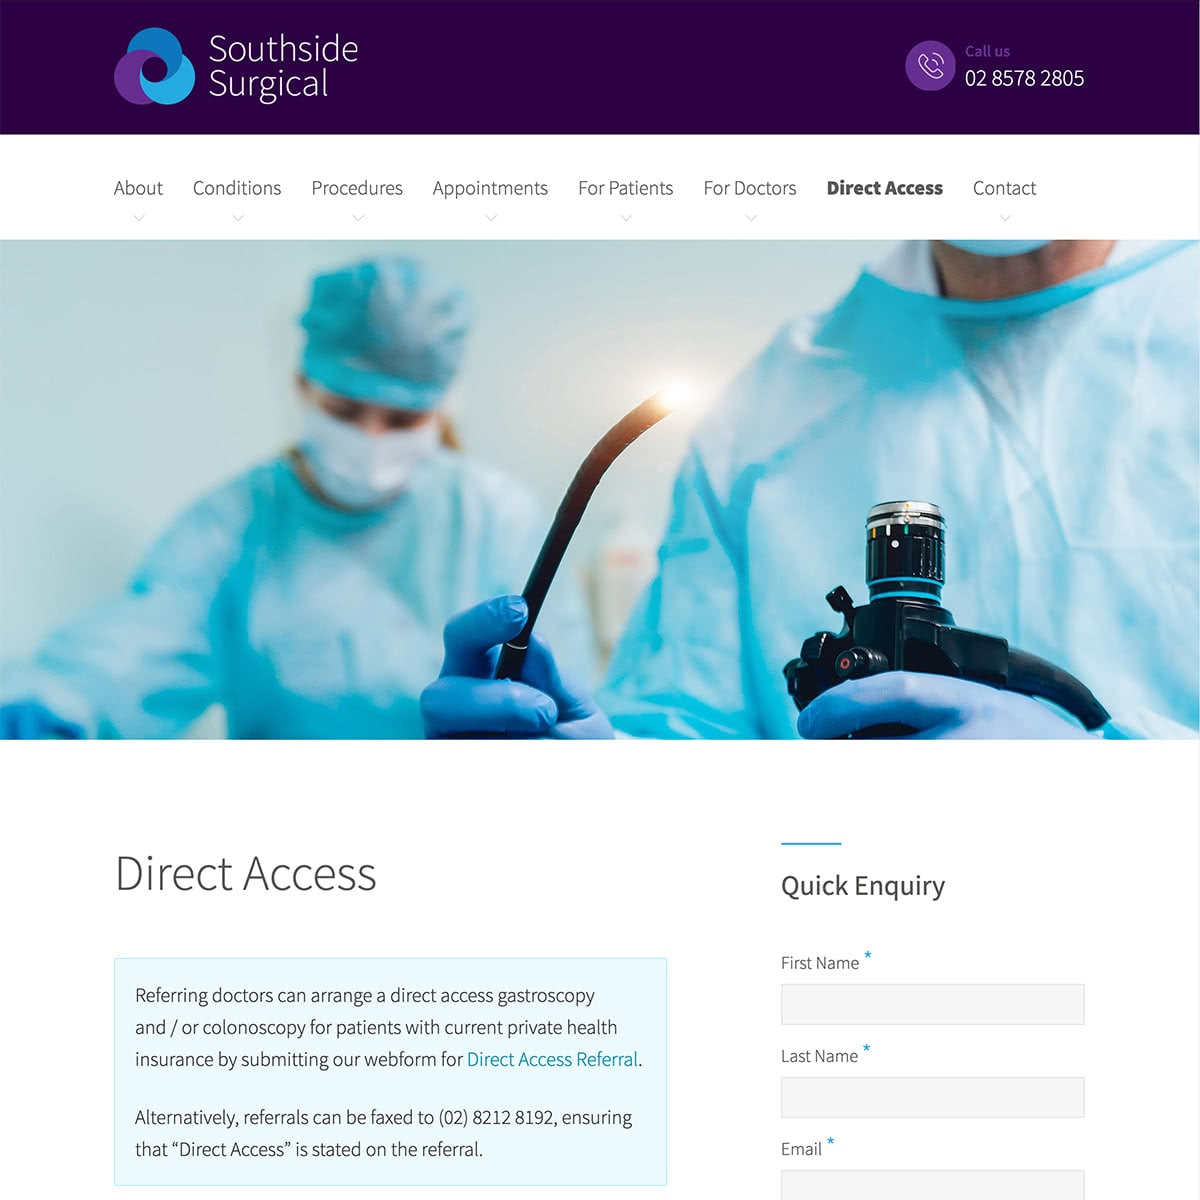 Southside Surgical - Direct Access